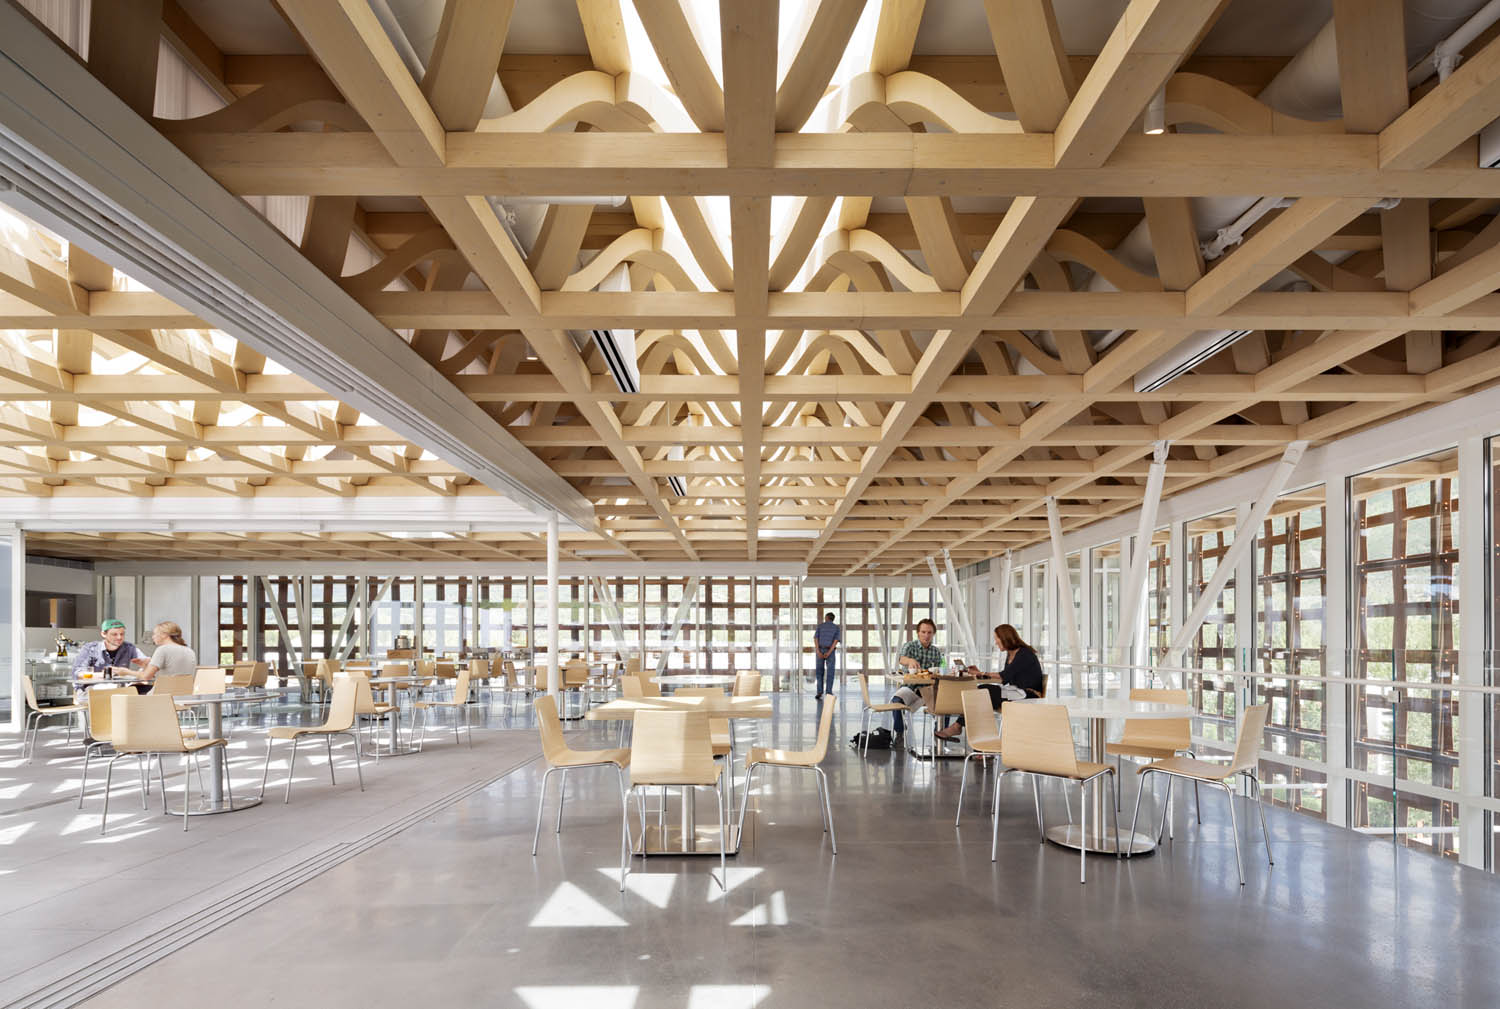 mm_Aspen Art Museum design by Shigeru Ban Architects_10